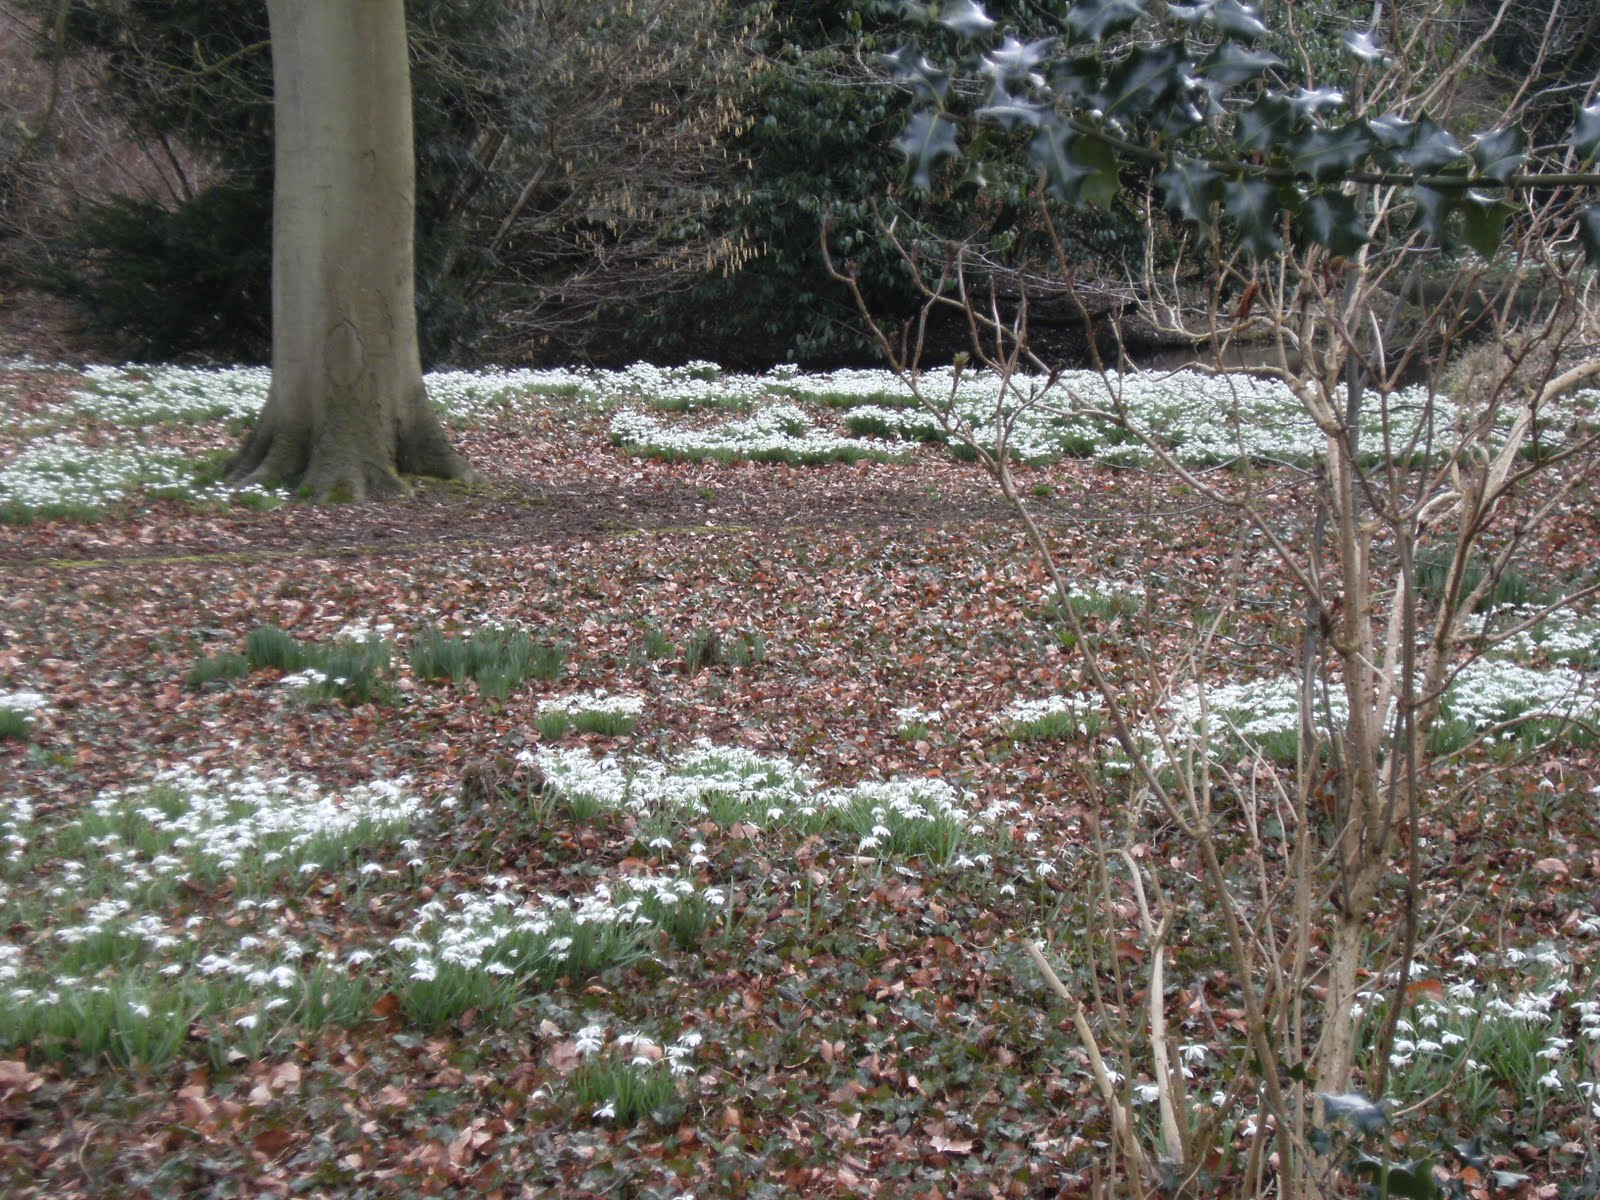 1003130007 Snowdrops in wood near Little Missenden